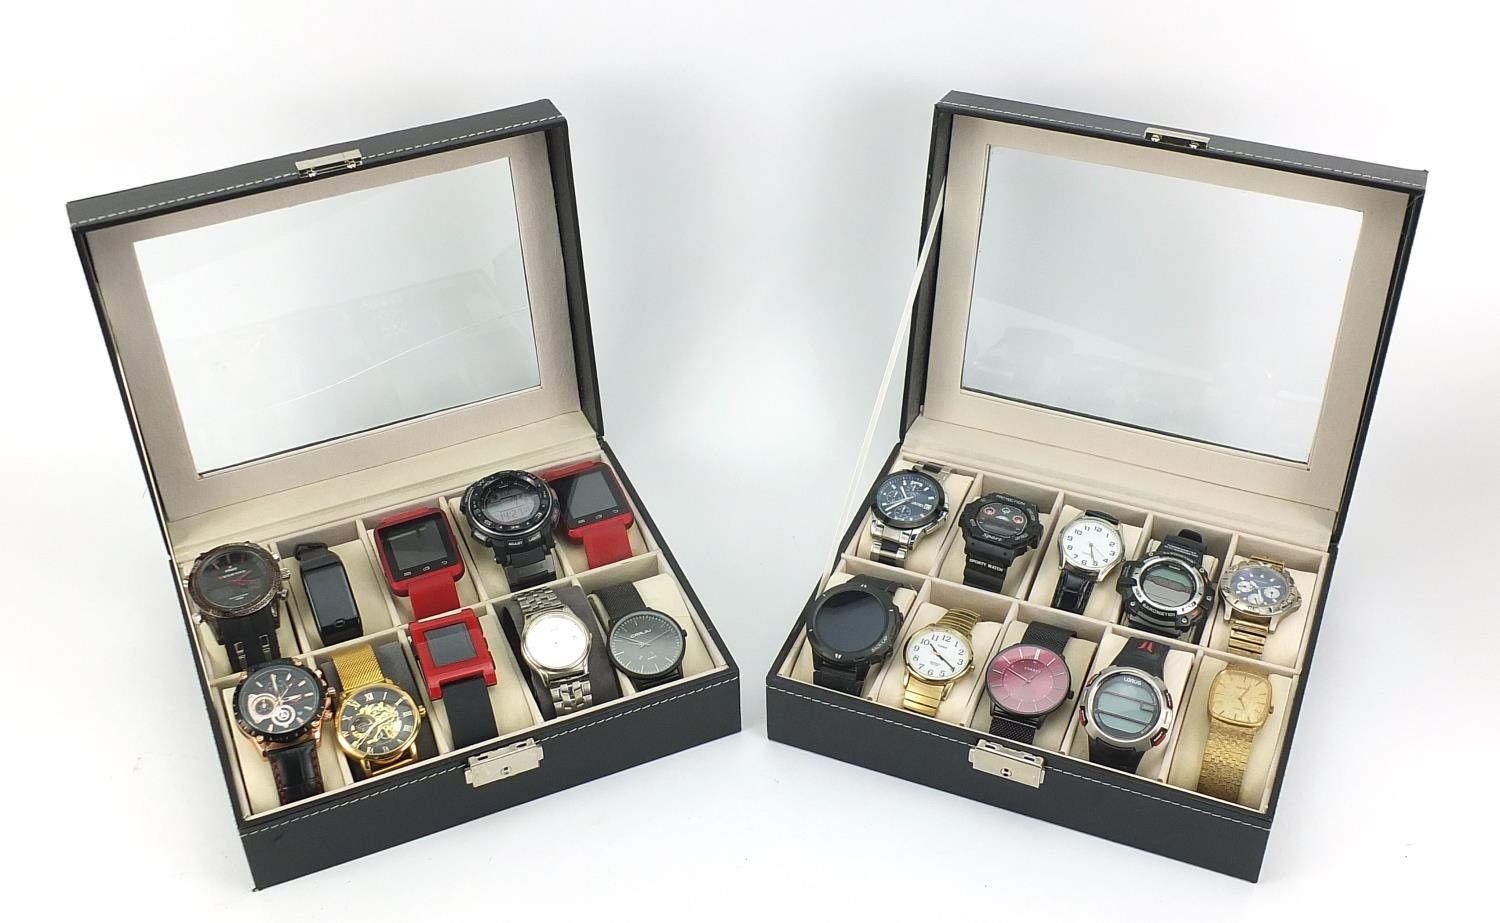 Twenty vintage and later gentlemen's wristwatches housed in two display cases, including Sekonda,